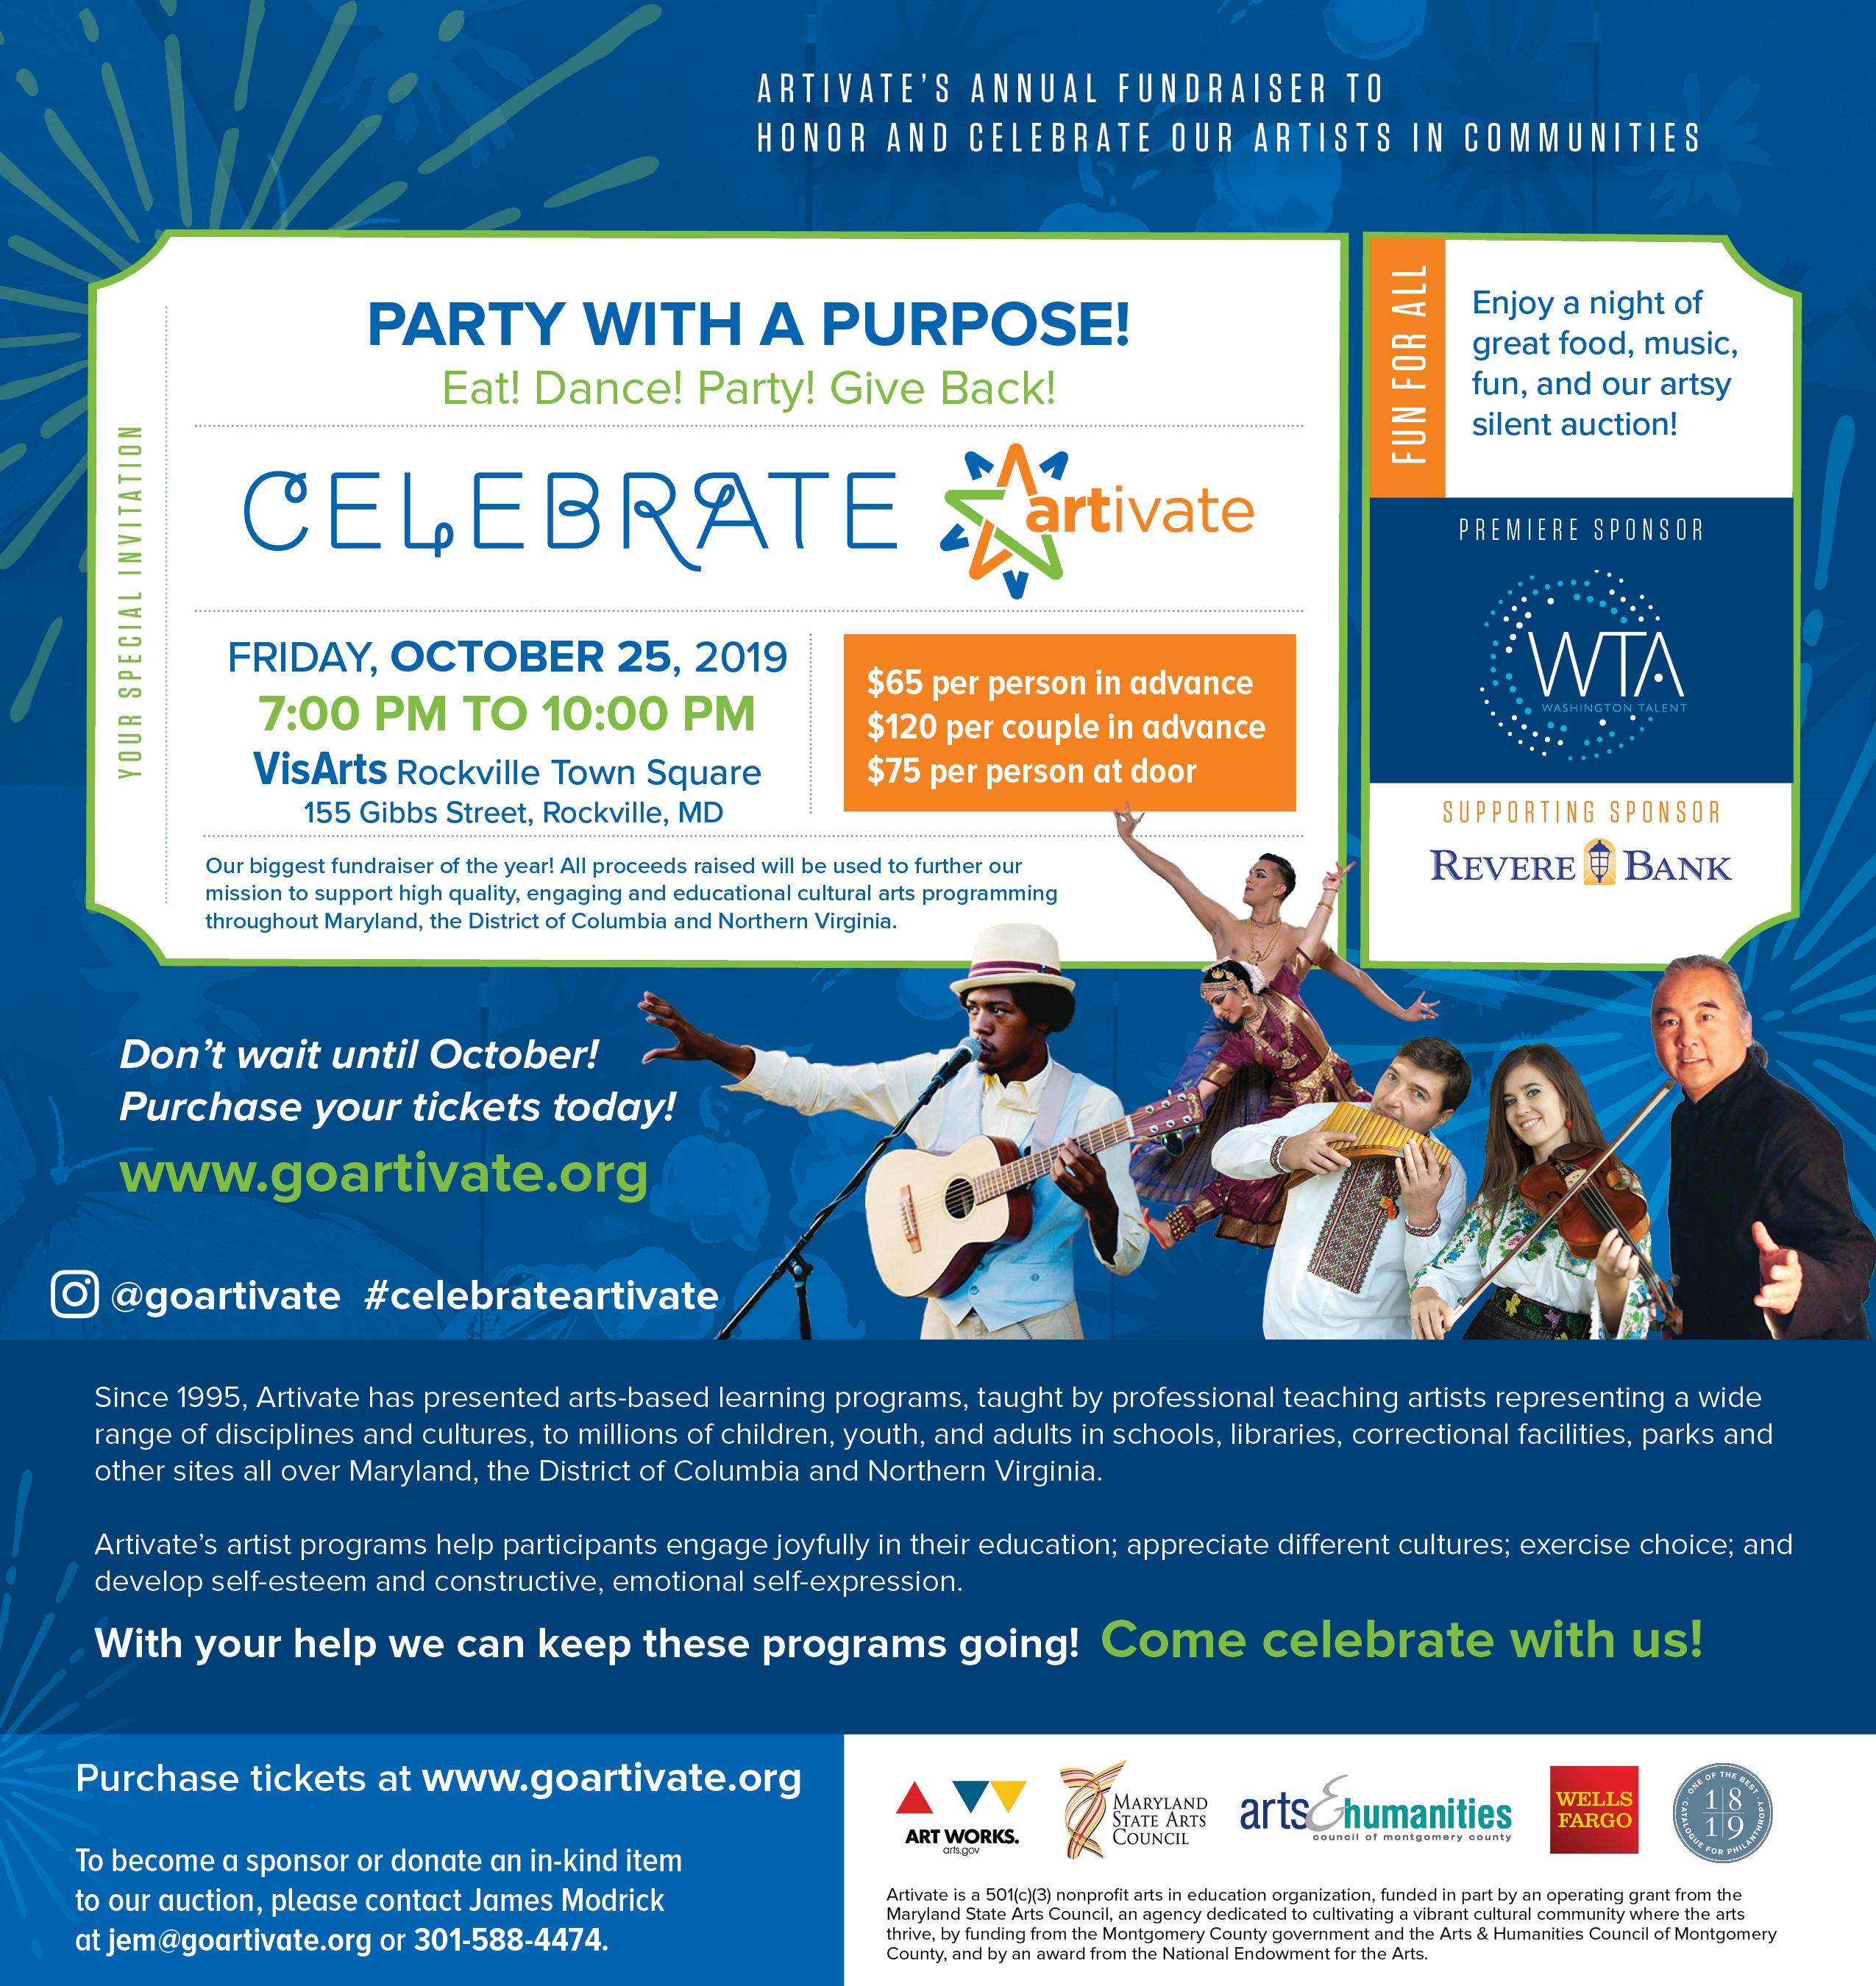 Celebrate Artivate! Tickets On Sale